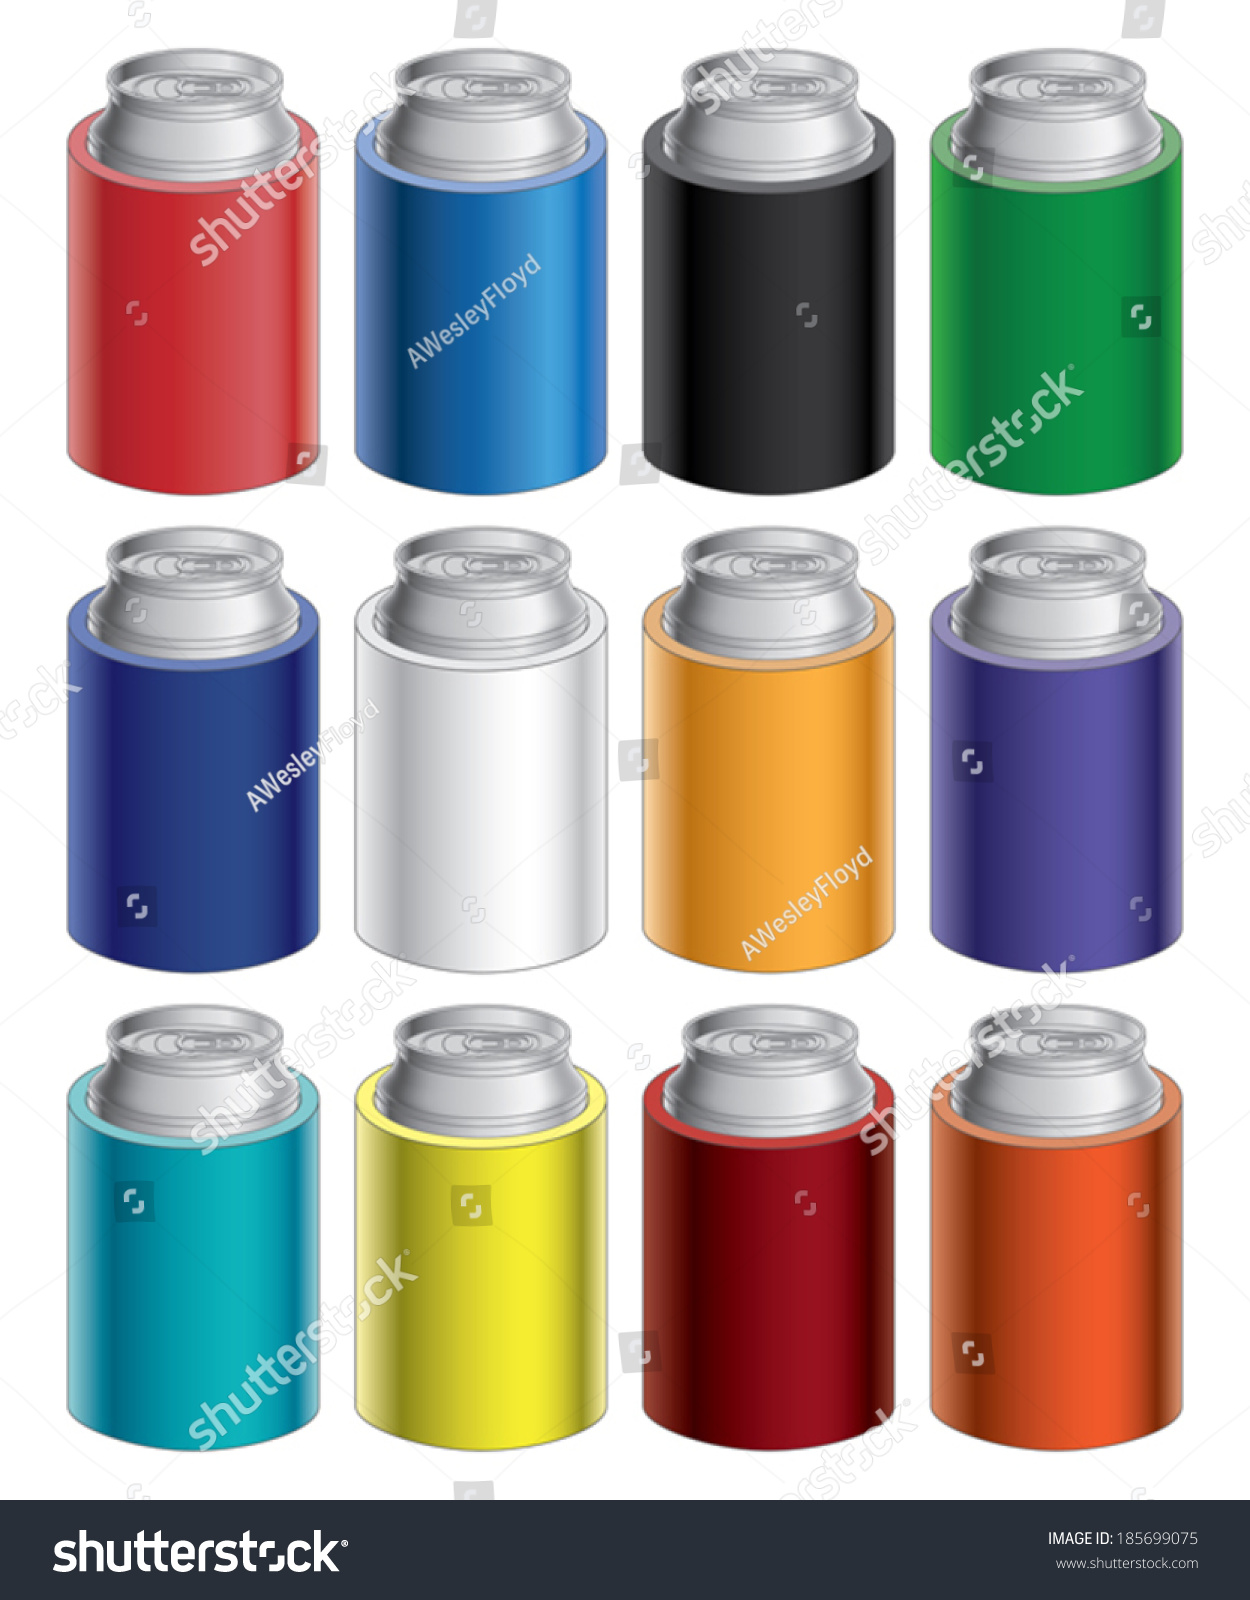 Koozies Or Can Coolers Is An Illustration Of Blank Koozie Cooler With Aluminum